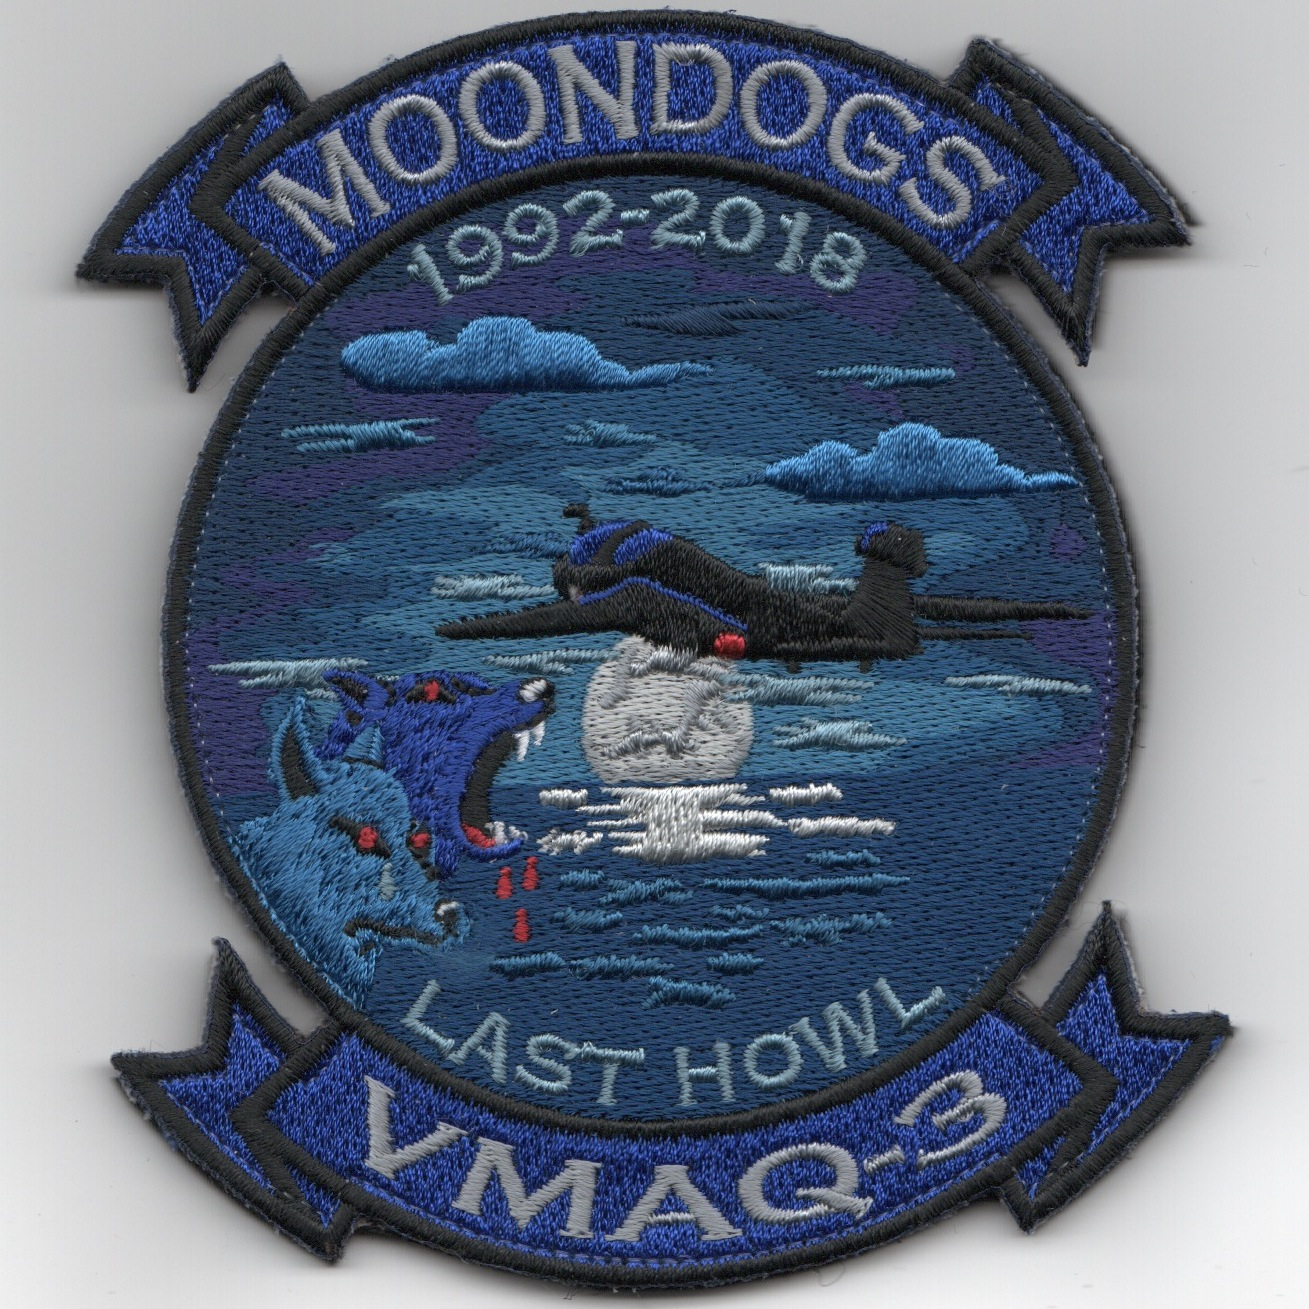 VMAQ-3 'Last Howl/MOONDOWN' Sqdn Patch (Blue)